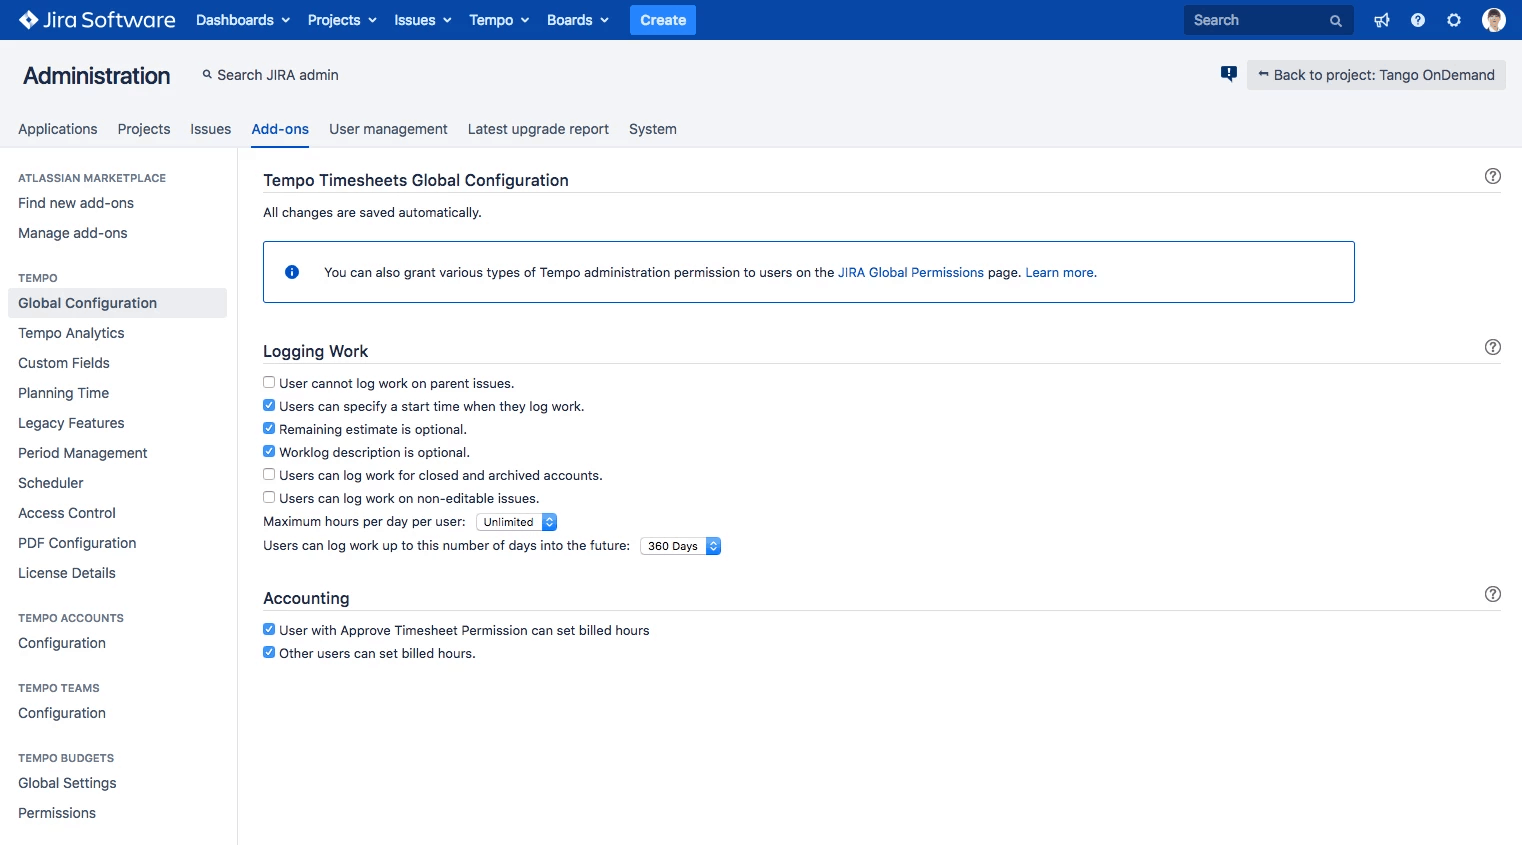 Adding billable time via Global Configuration jira